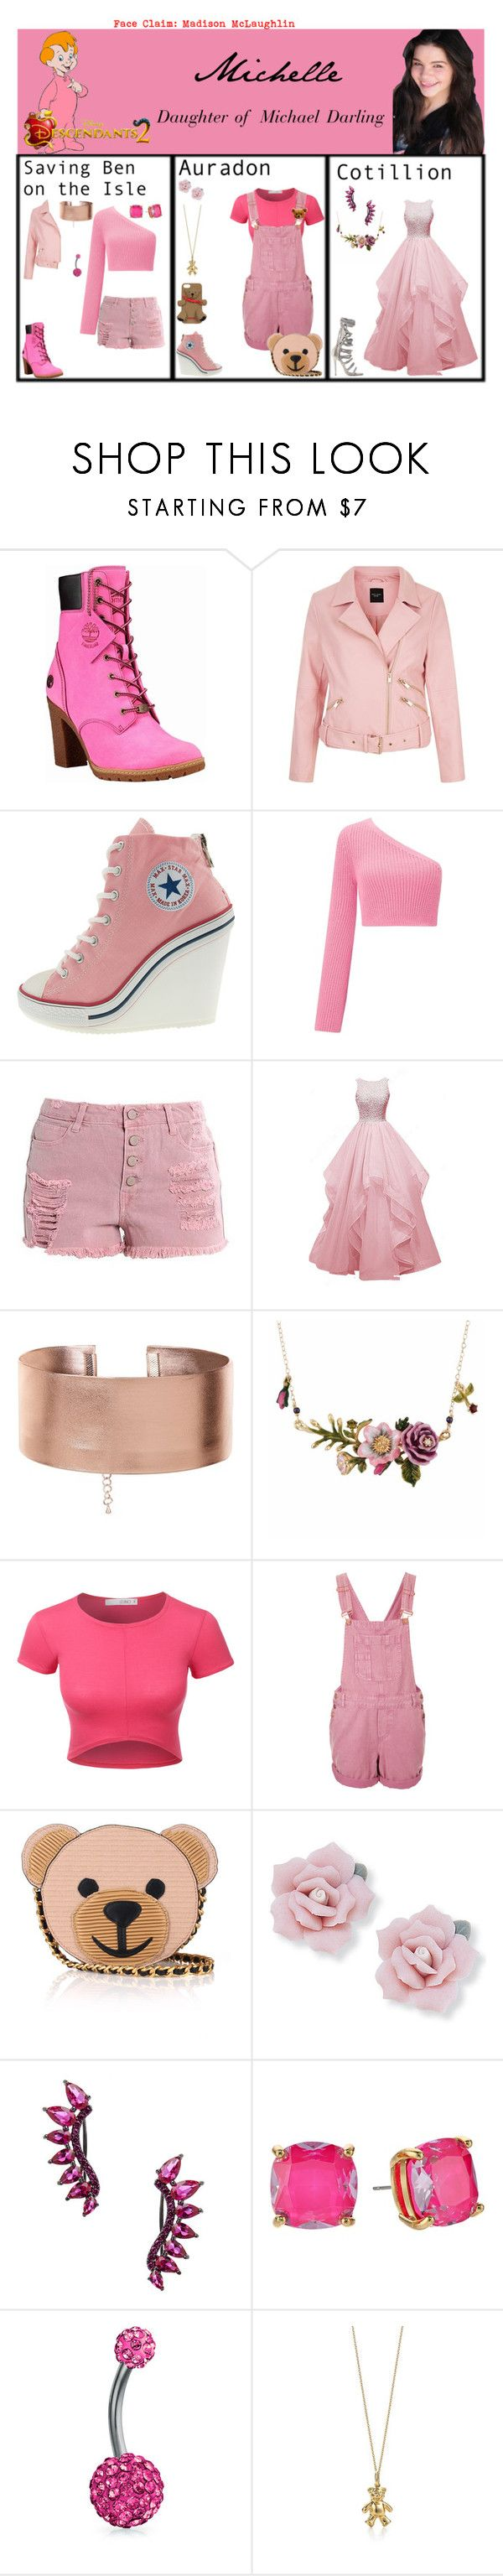 """""""Michelle. Daughter of Michael Darling. Descendants 2"""" by elmoakepoke ❤ liked on Polyvore featuring Timberland, Miss Selfridge, Monika Chiang, Les Néréides, LE3NO, Topshop, Moschino, Palm Beach Jewelry, Noir Jewelry and Kate Spade"""